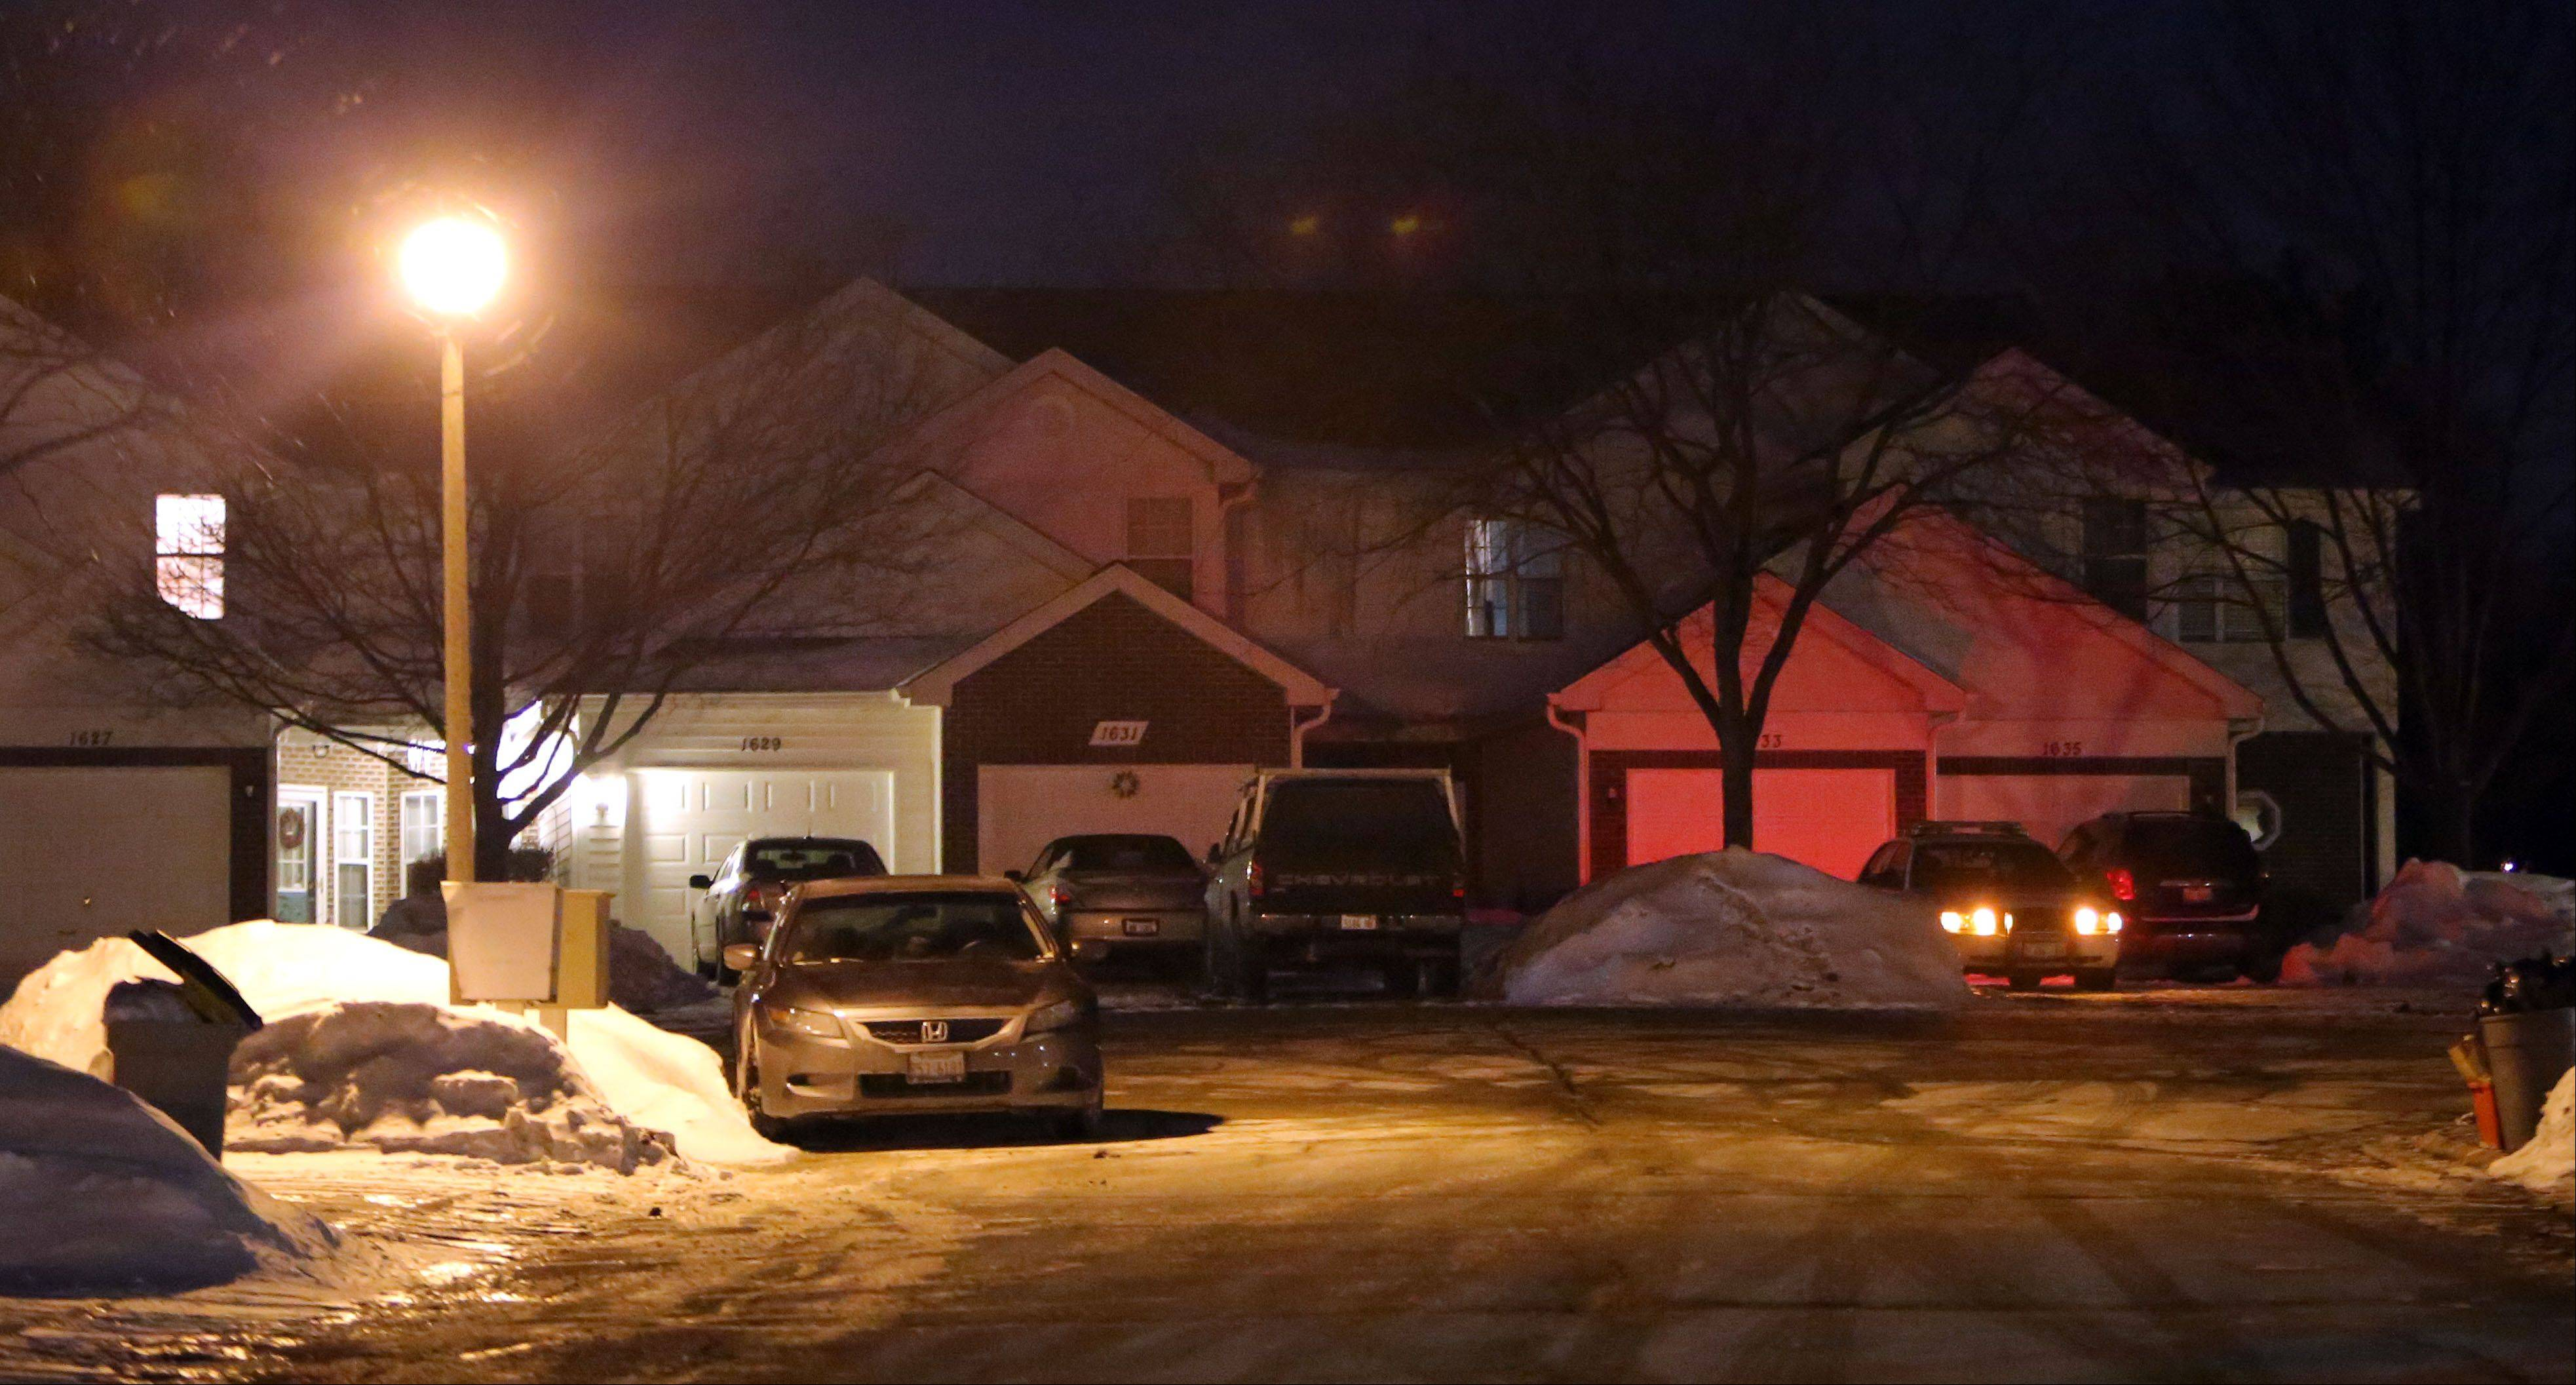 Mundelein police are investigating the death of a juvenile Tuesday morning at a home in Mundelein.